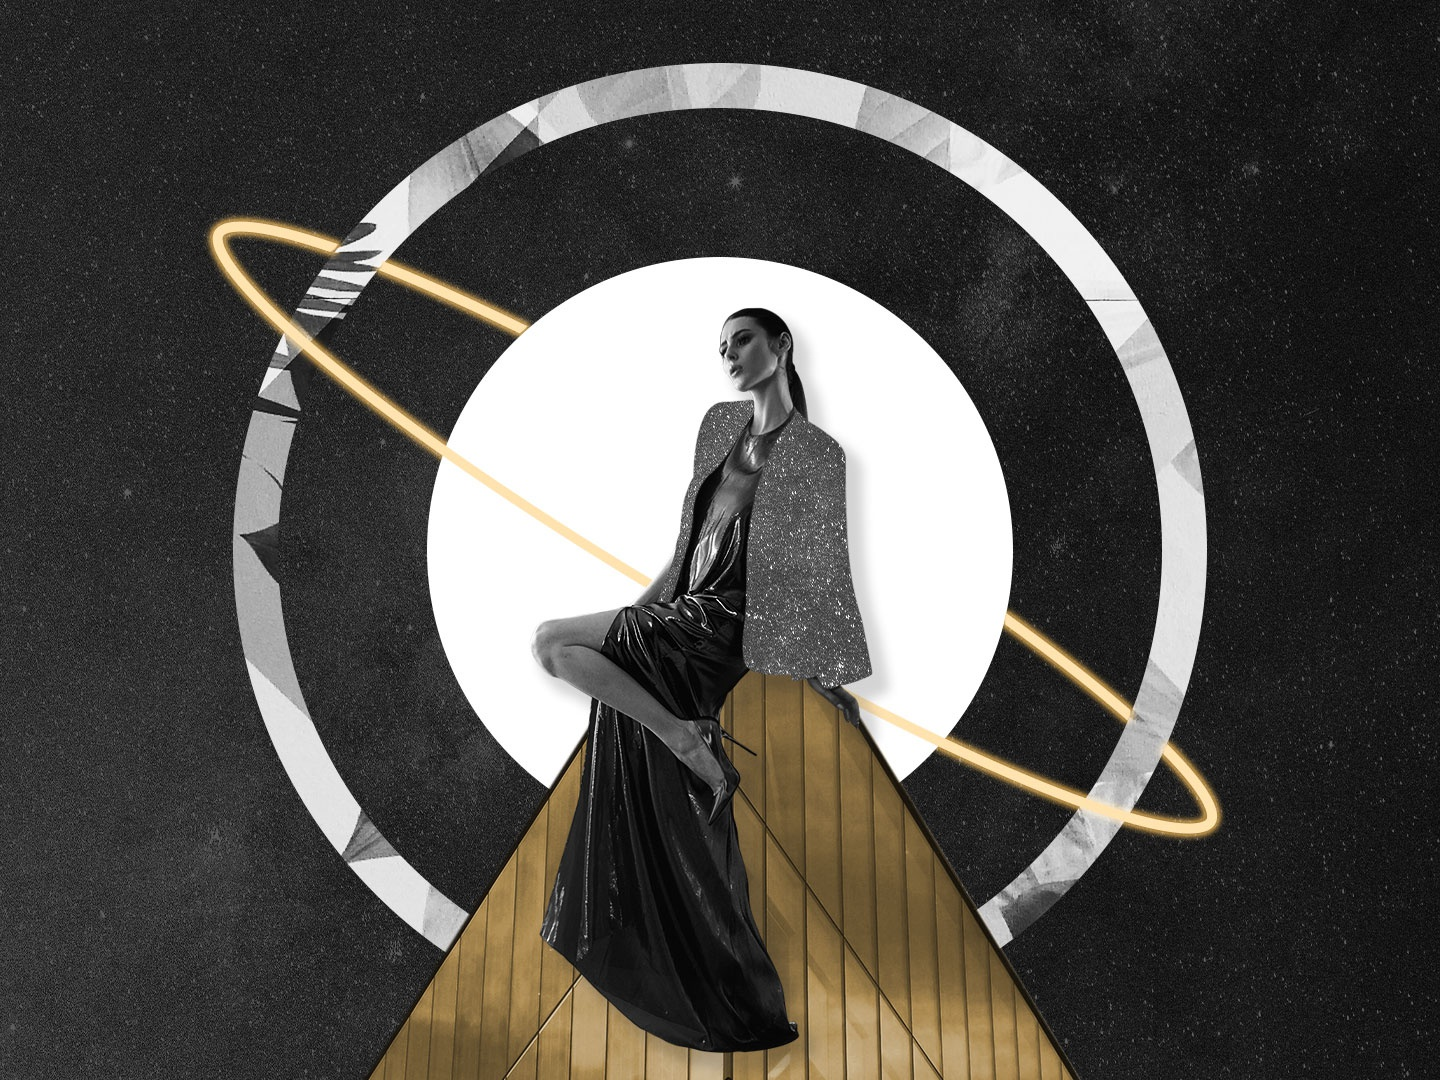 Space Glamour - Collage 18 fashion collages collageart warm up concept collage creative illustration design